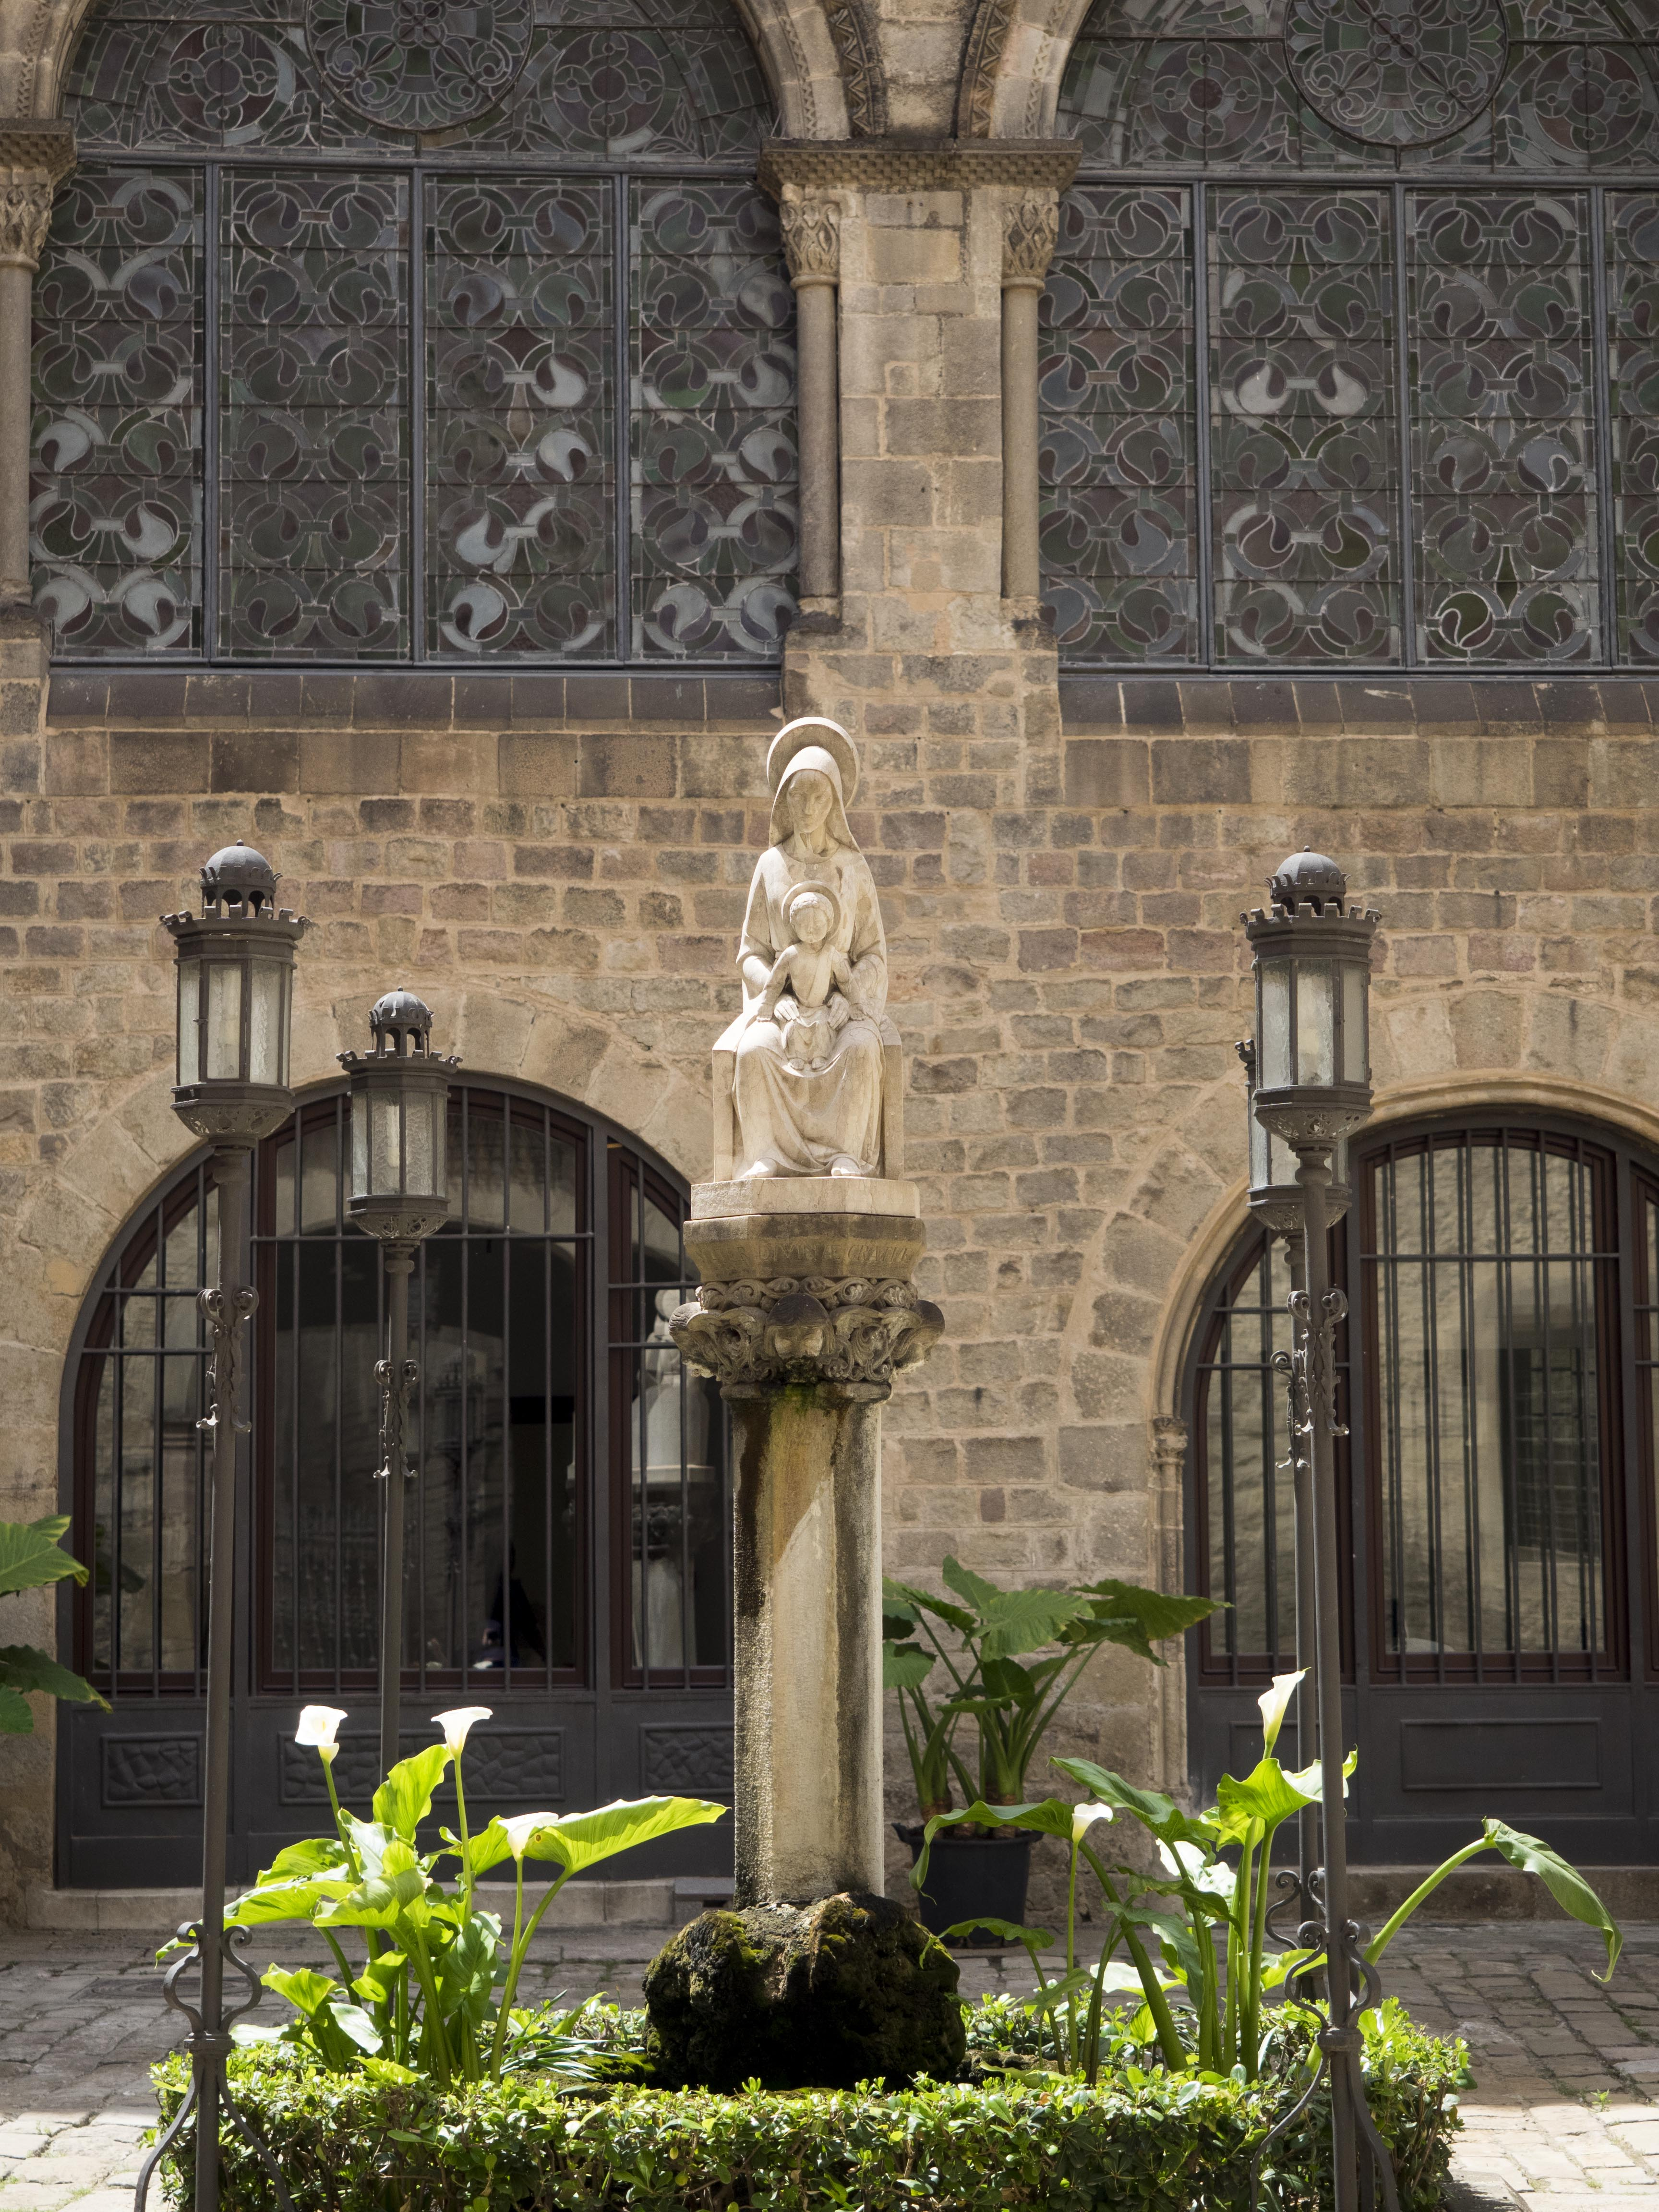 A saint on a plinth in a government building courtyard